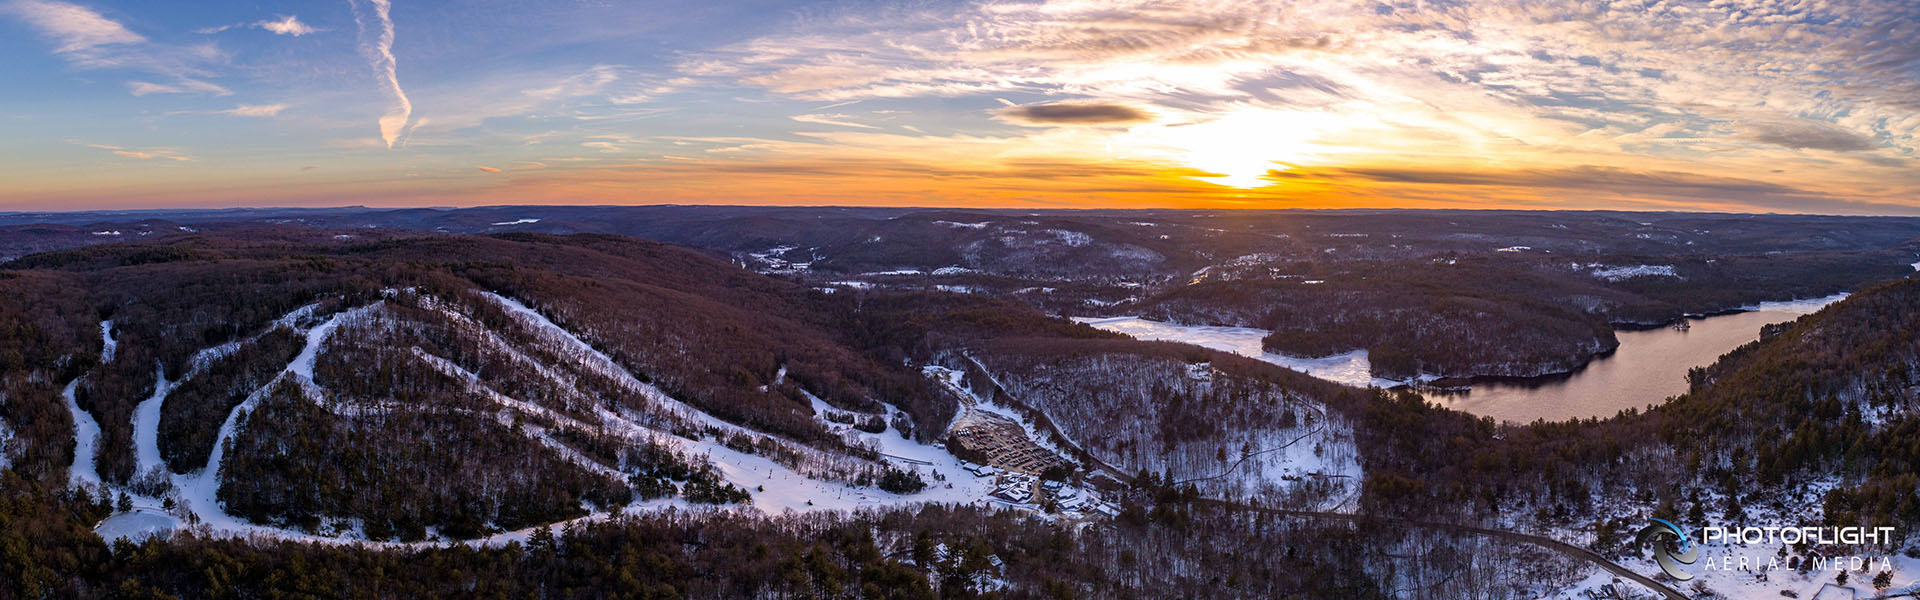 Drone image of Ski Sundown mountain at sunset